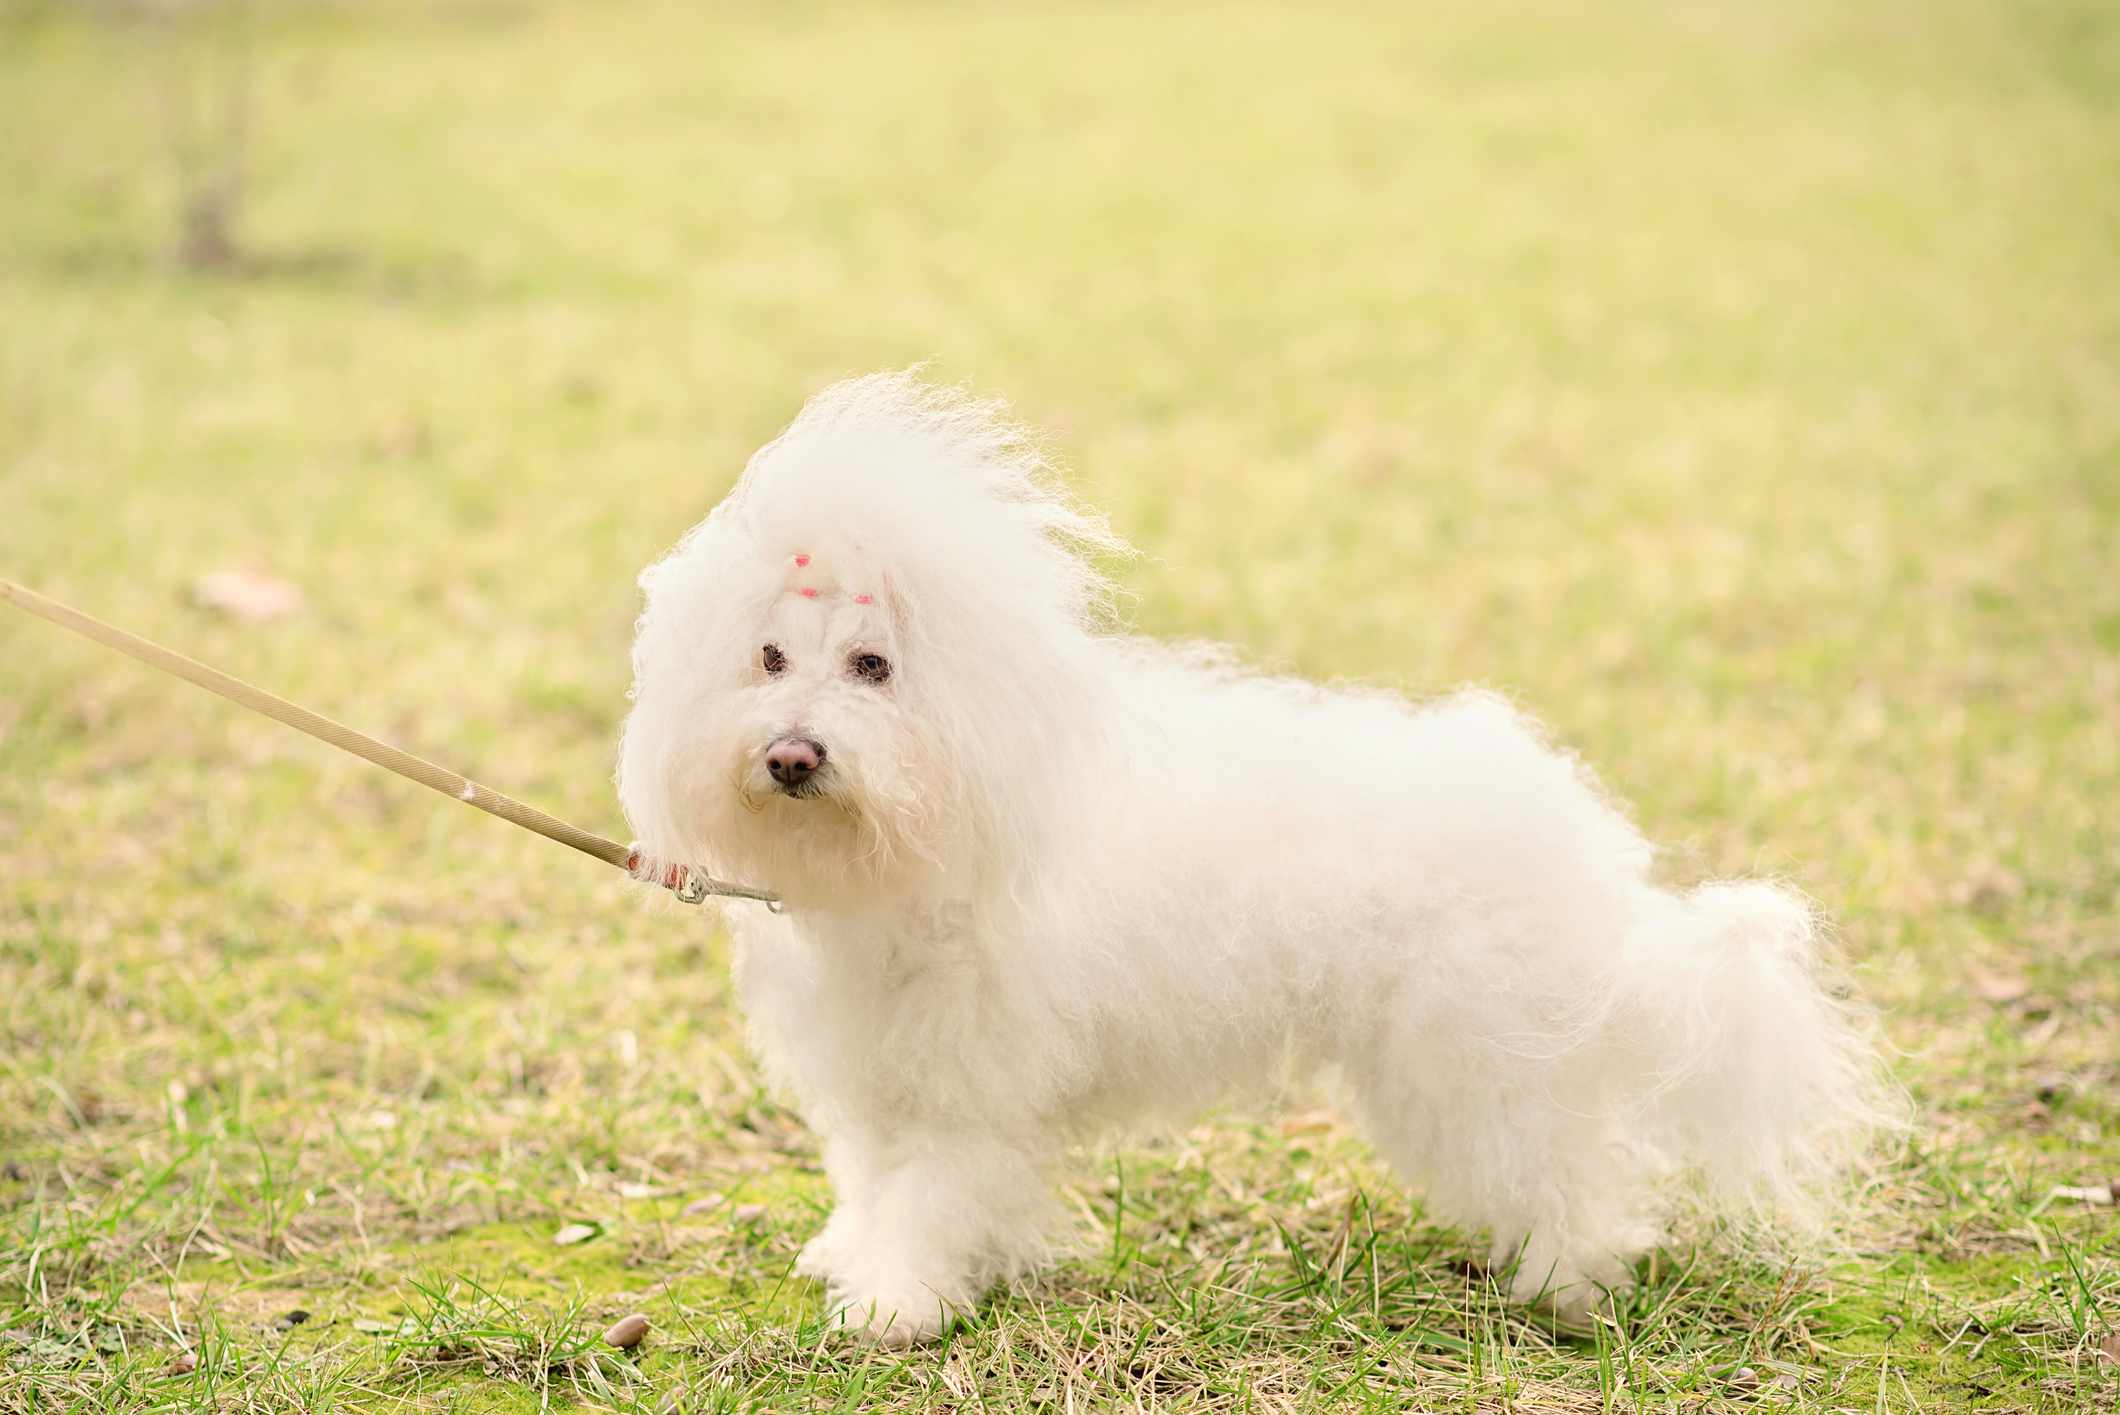 A fluffy, white dog standing outdoors.